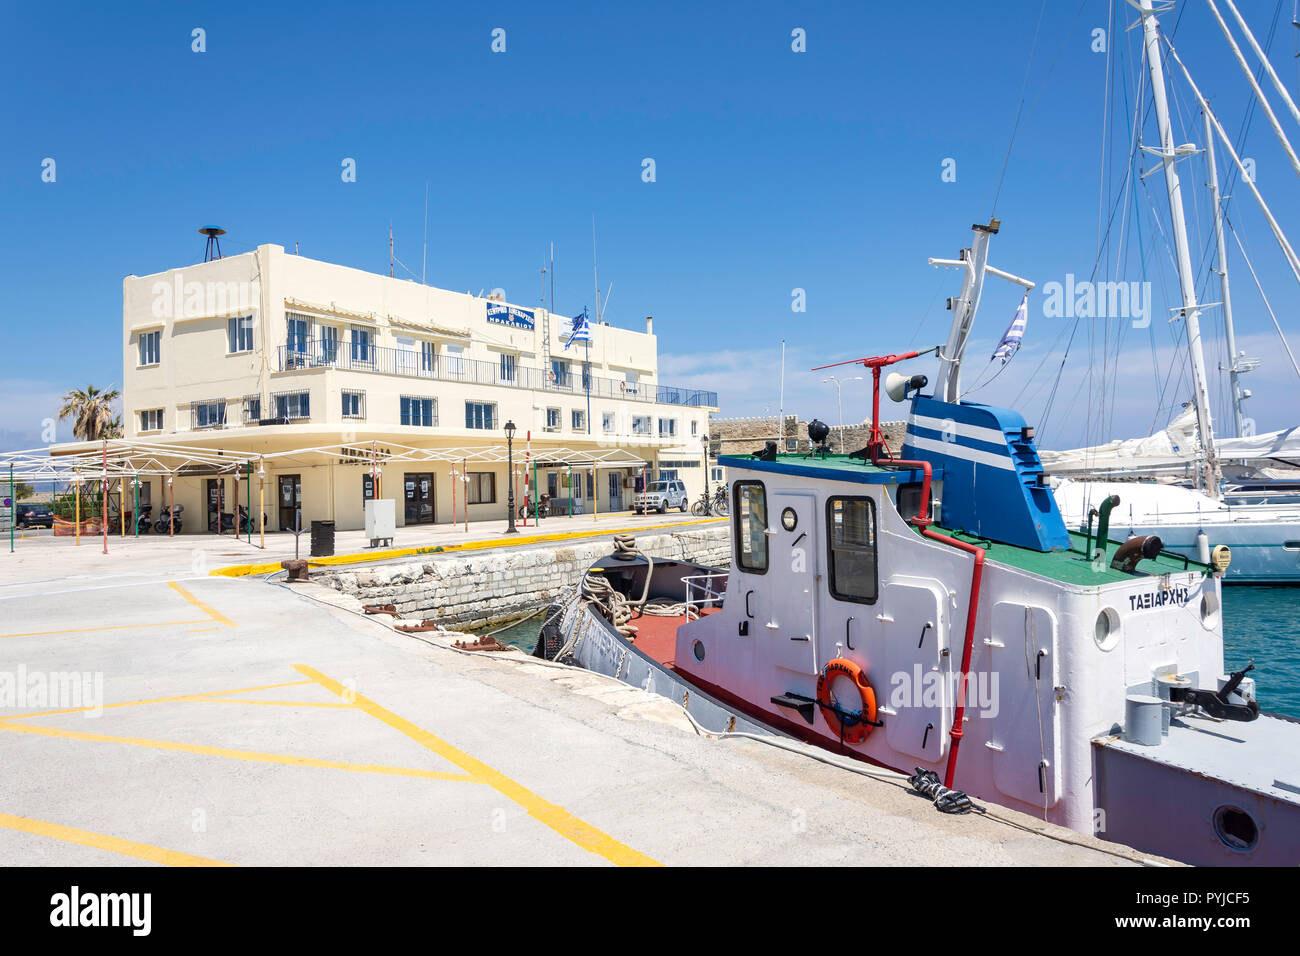 Central Port Authority building, Old Harbour, Heraklion (Irakleio), Irakleio Region, Crete (Kriti), Greece - Stock Image